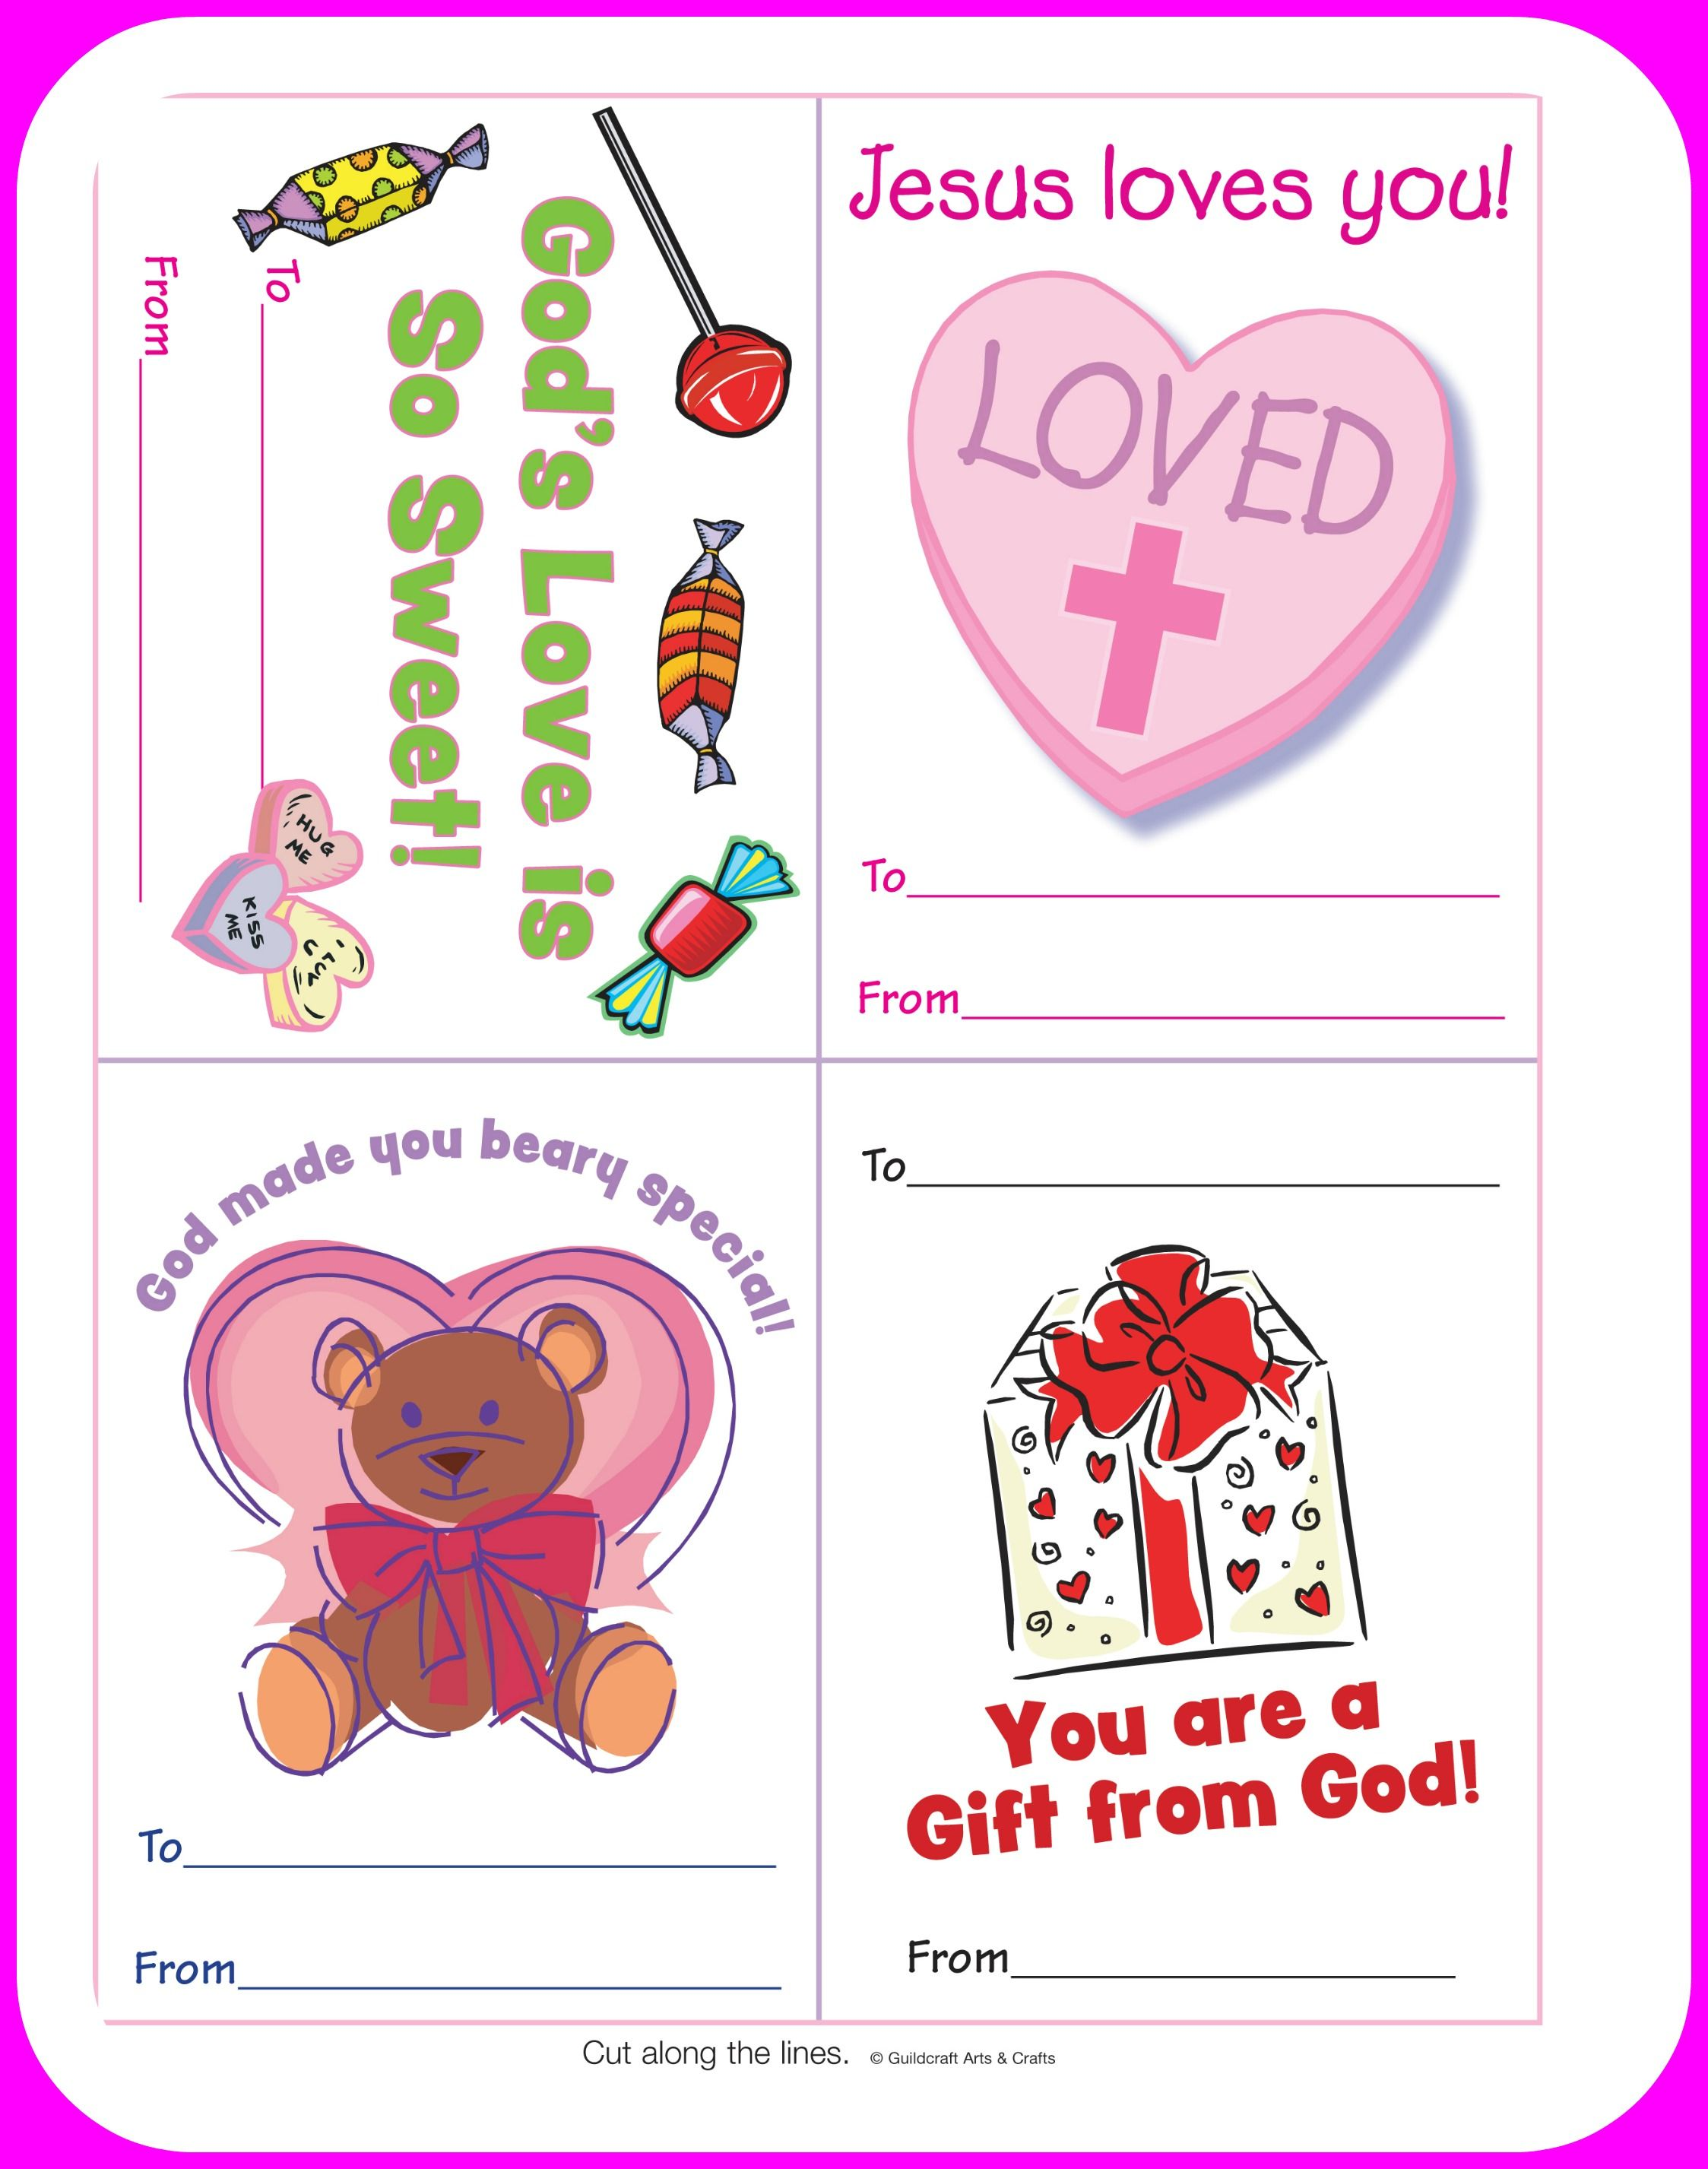 Chinese Valentine Day Card Coloring Page For Kids Valentinesdayclipart Free Vintage